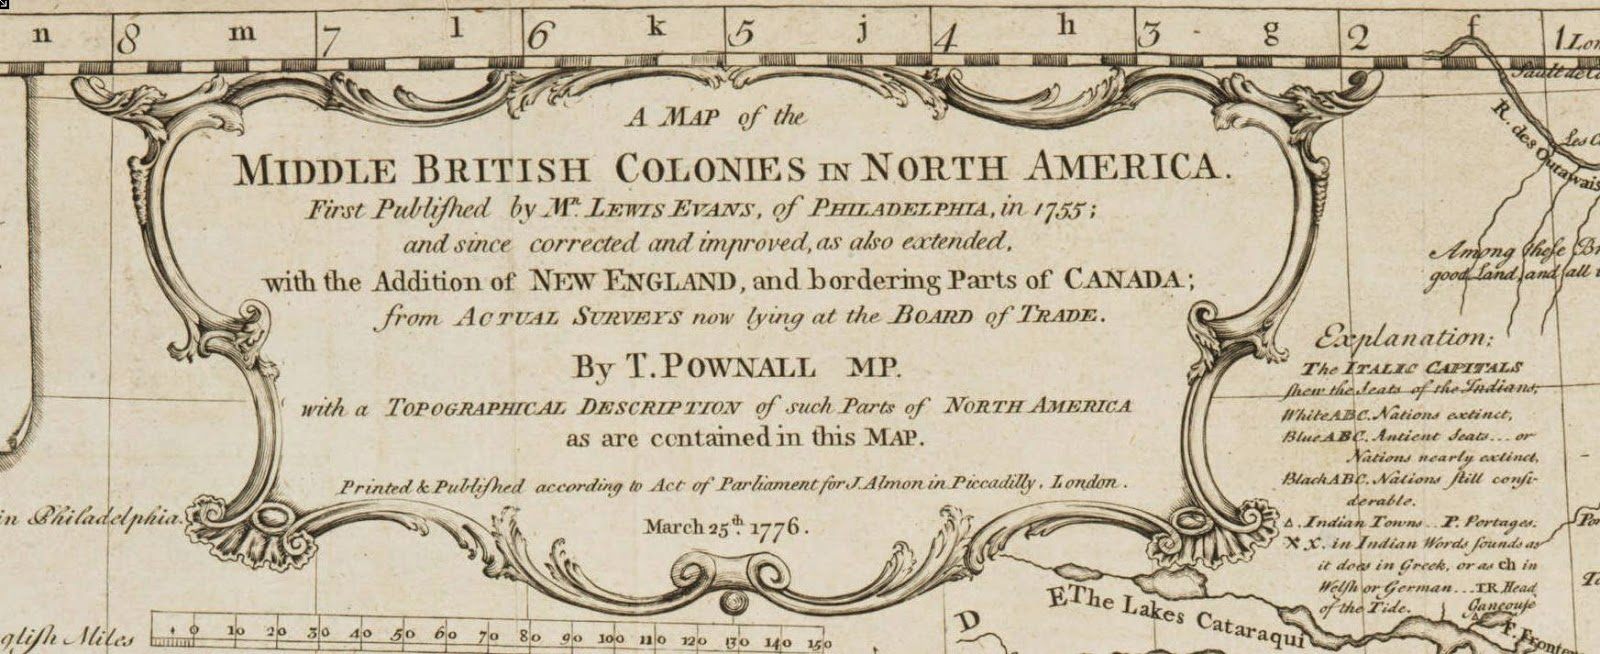 explanation the italic capitals shew the seats of the indians white abc nations extinct blue abc antient seats or nations nearly extinct